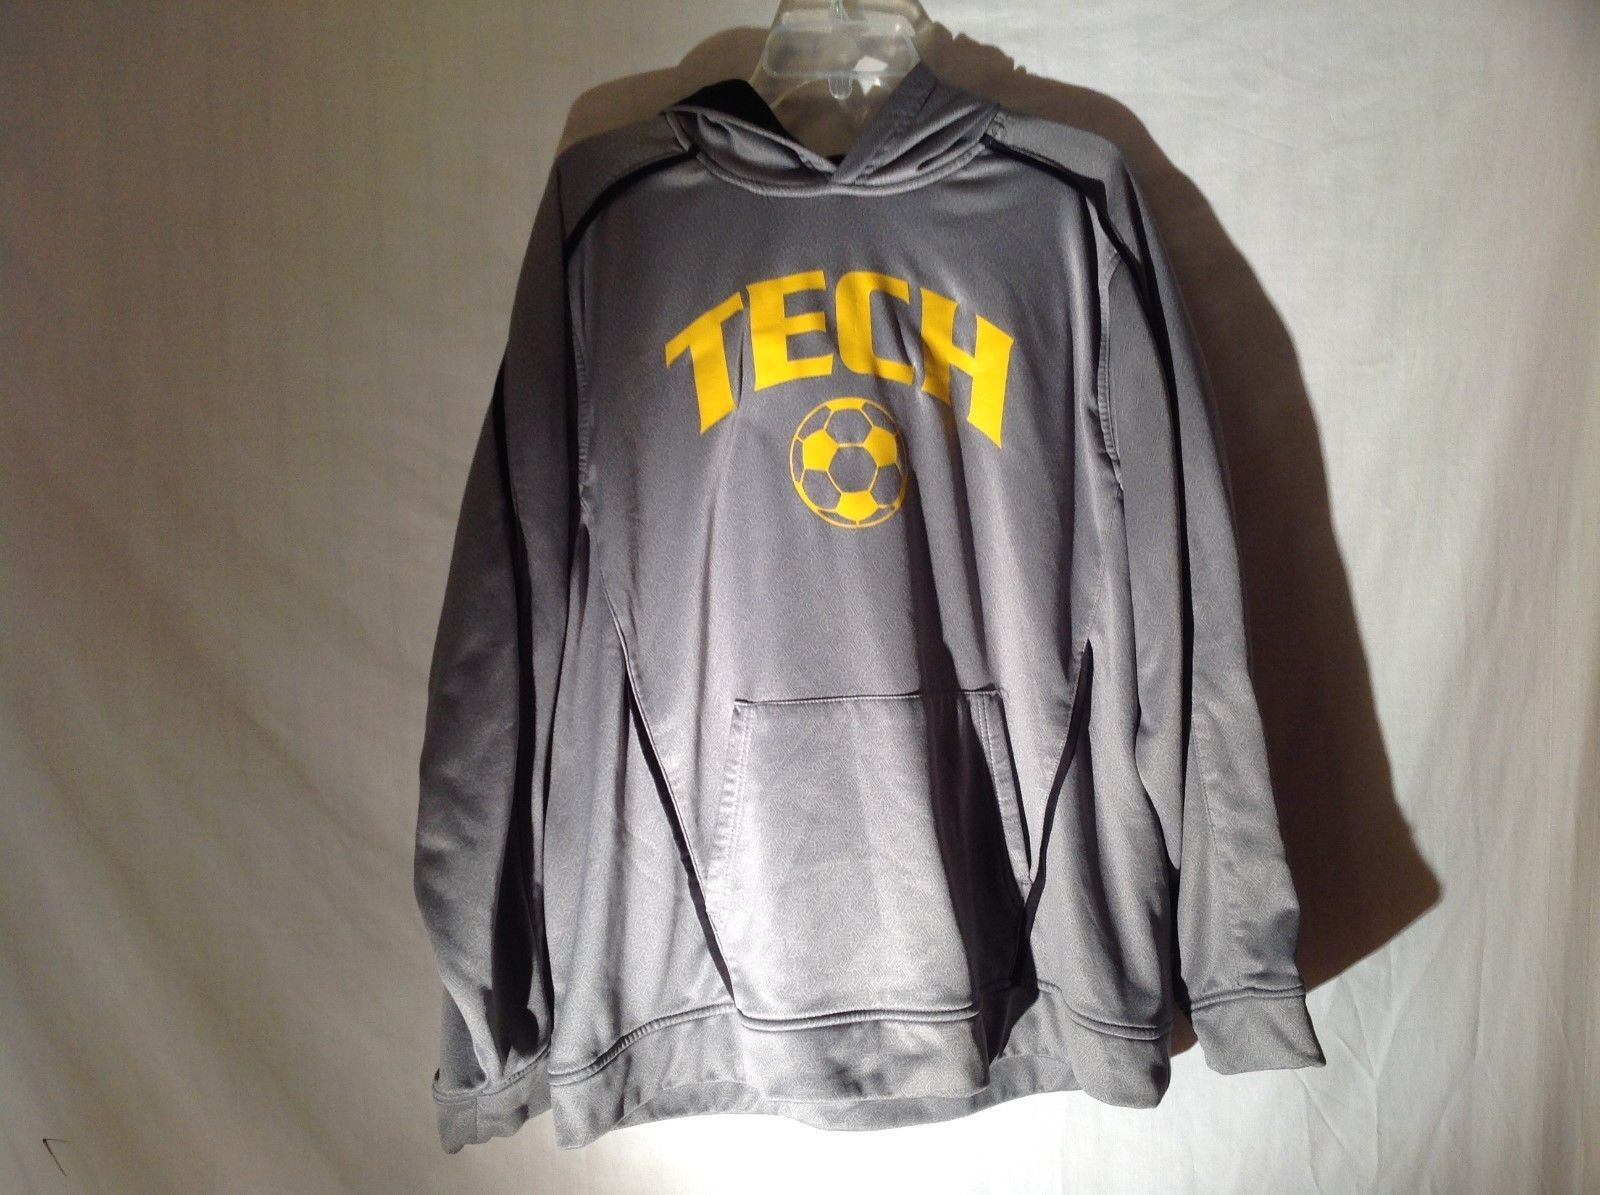 Mens TECH Halloway Gray Hoodie Sweatshirt Sz Large